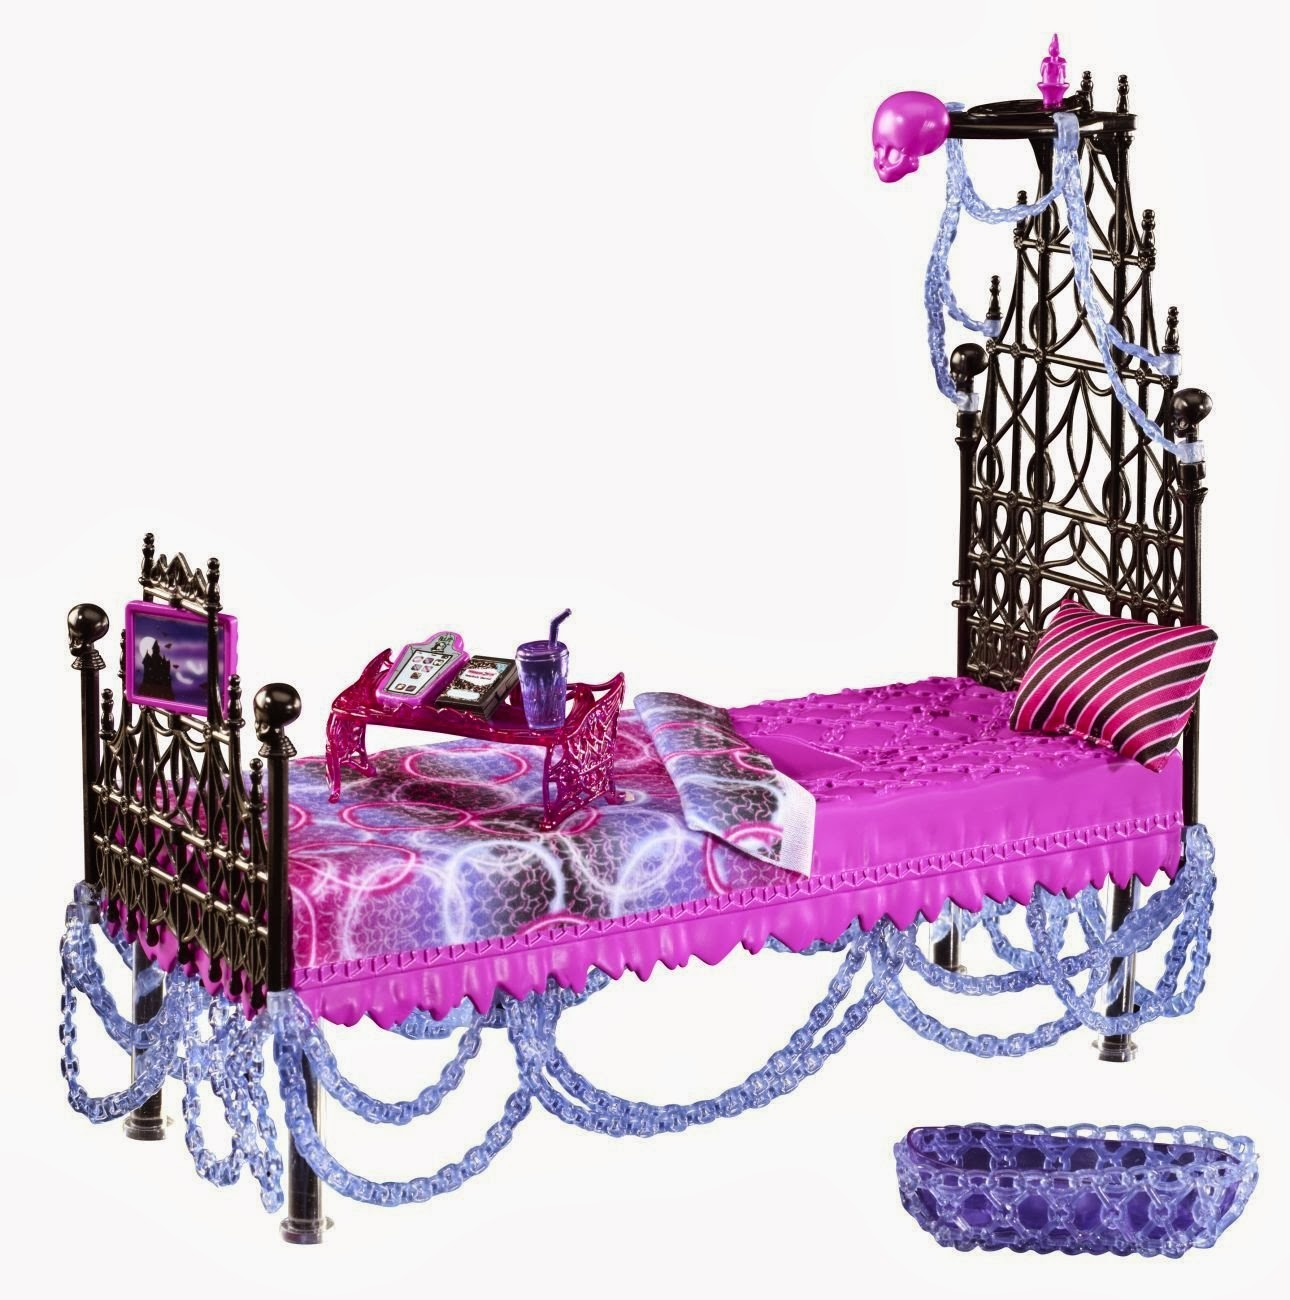 mom of 2 dancers reviews monster high doll furniture sales amazon. Black Bedroom Furniture Sets. Home Design Ideas